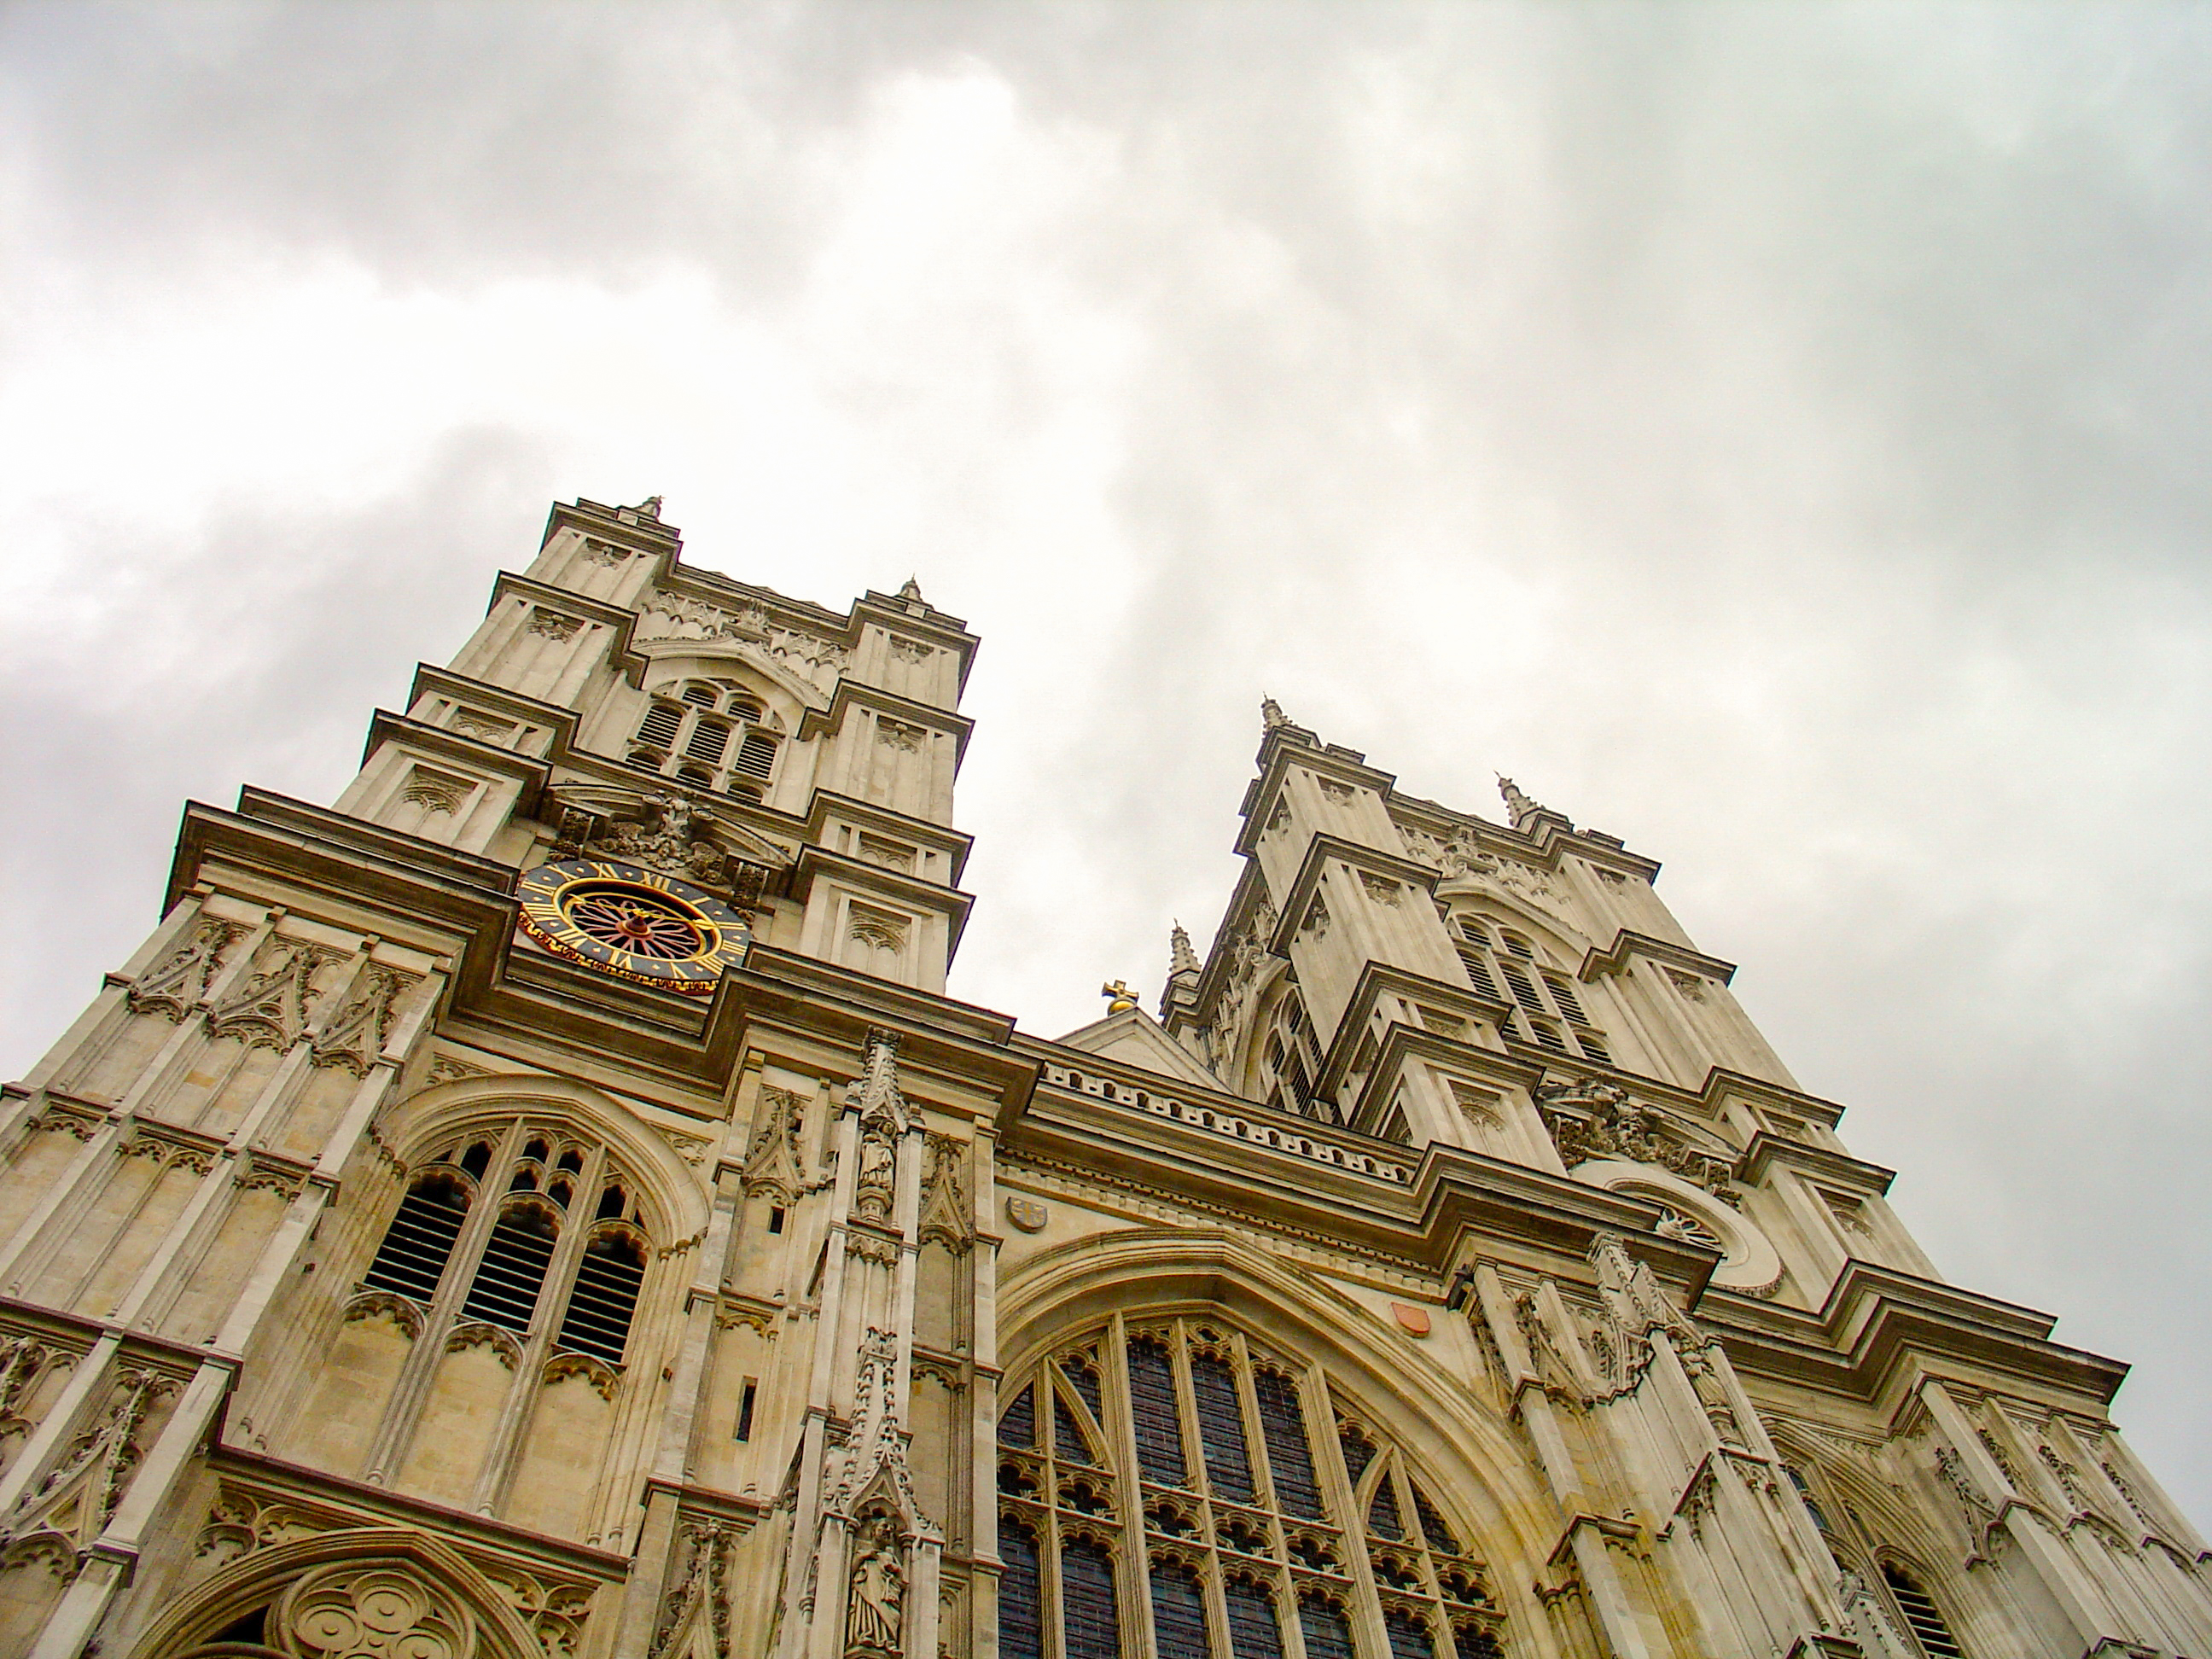 London Icons: 10 Interesting Facts About Westminster Abbey You May Not Have Known